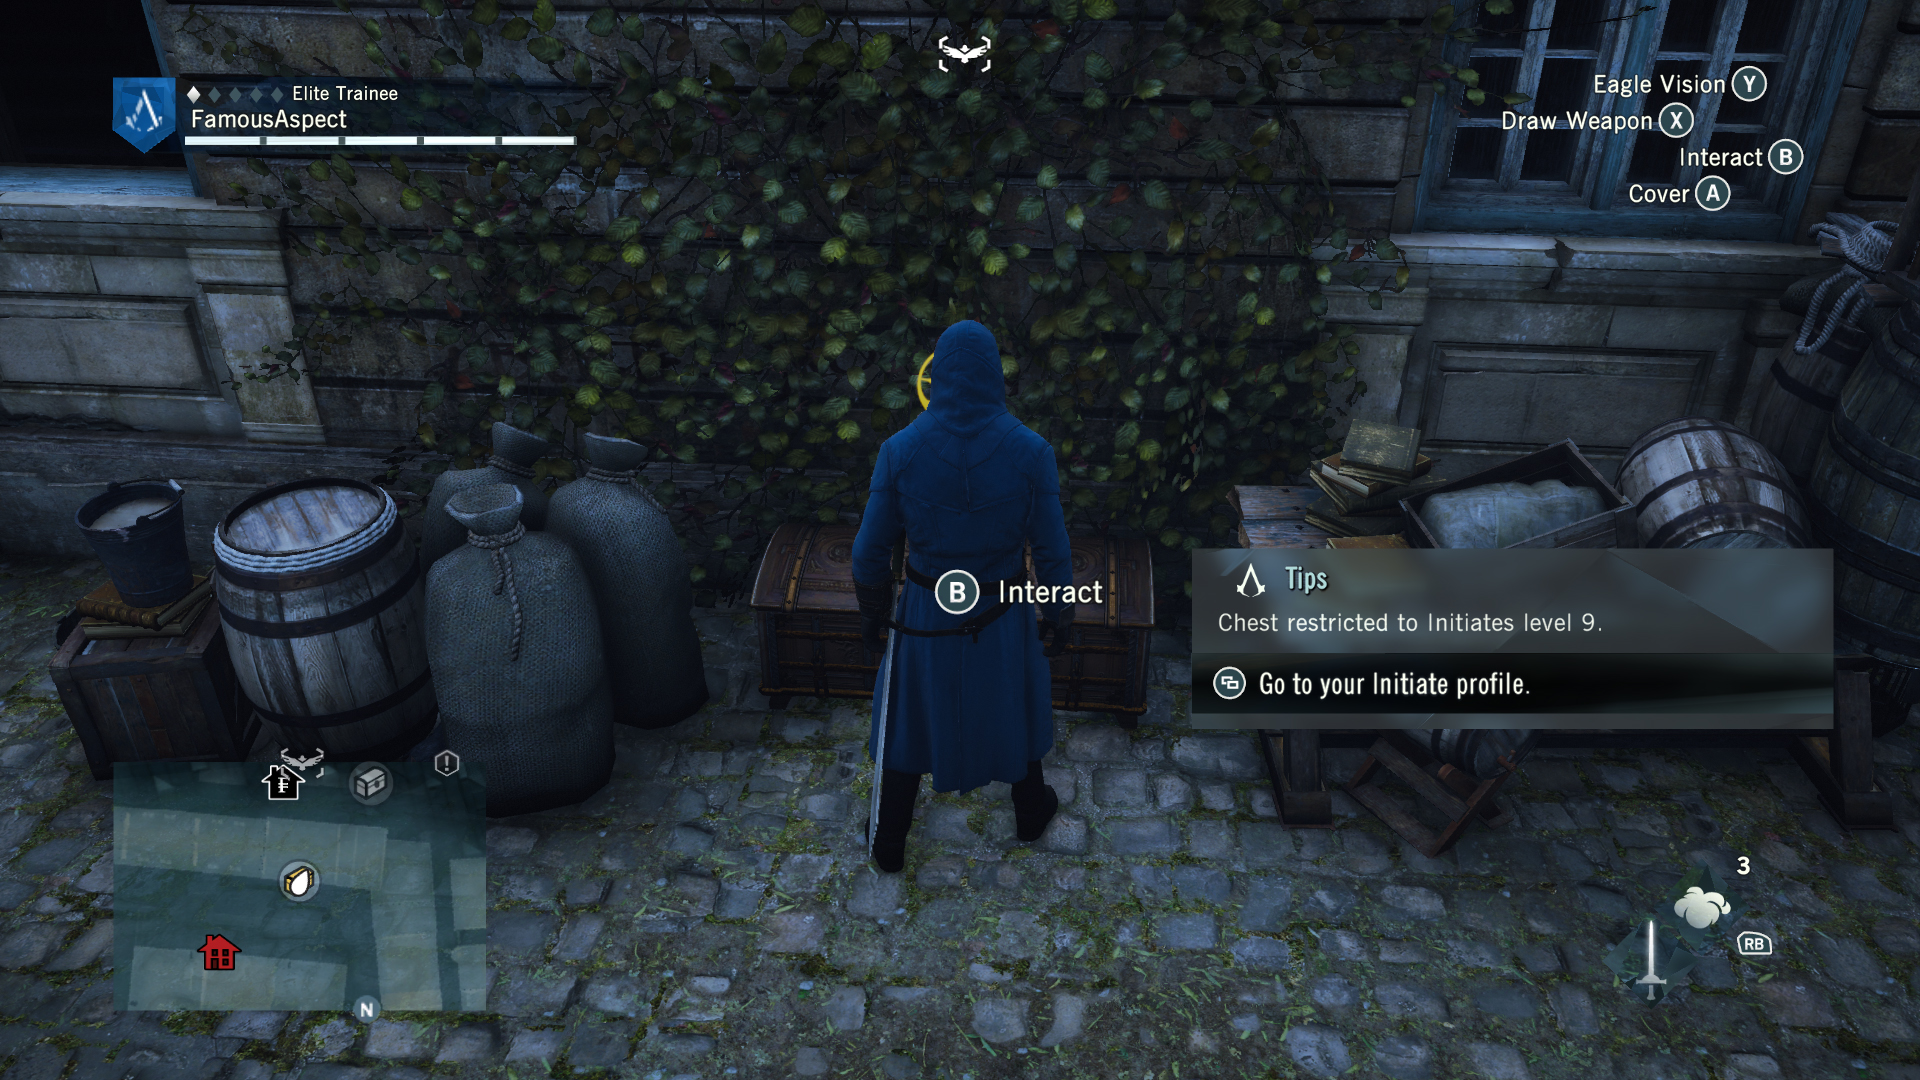 Assassin's Creed Unity game monetization analysis